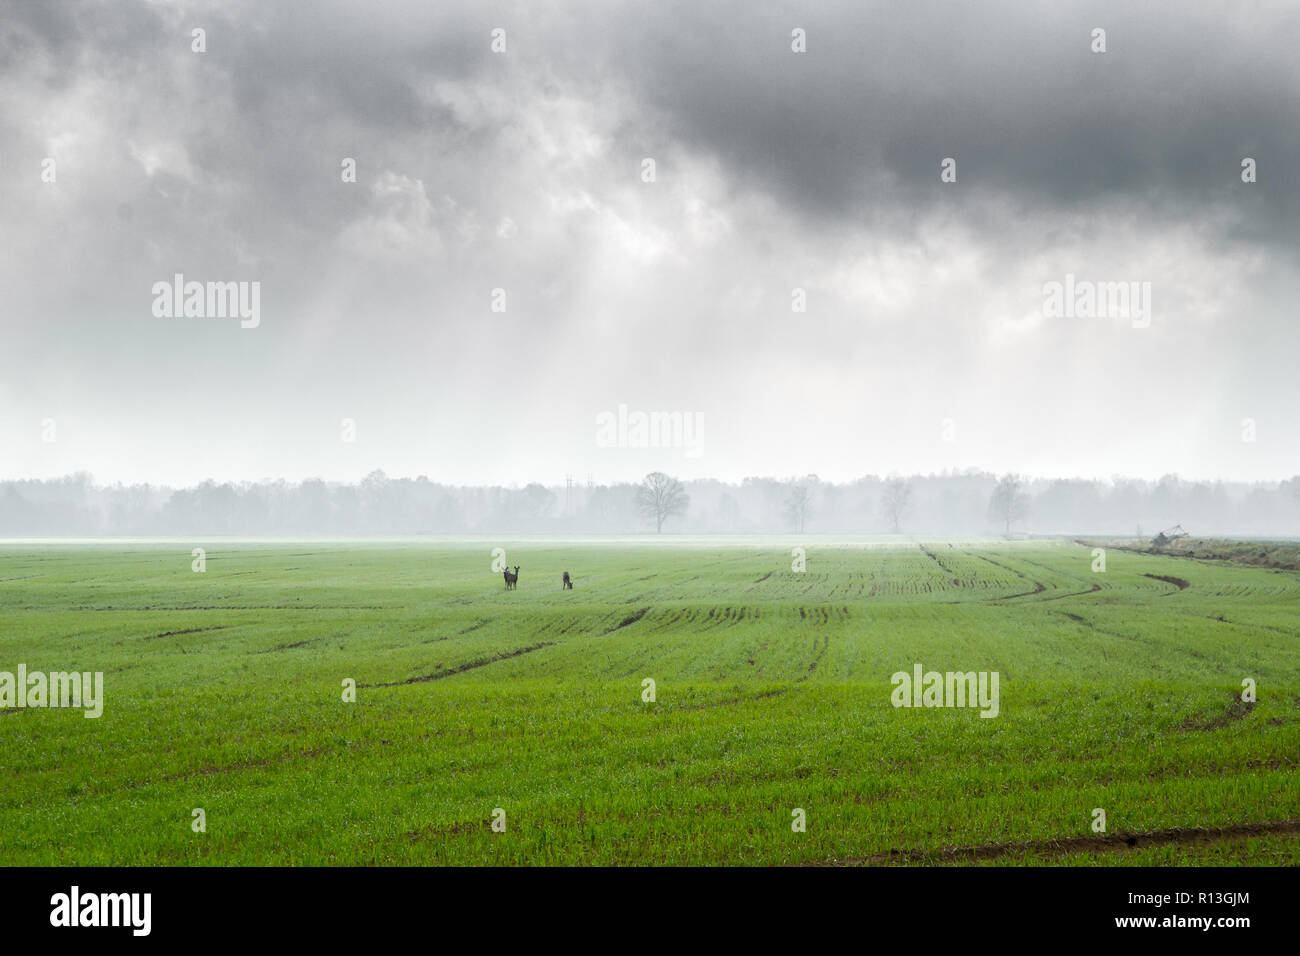 foggy morning in a village in cloudy weather in November, autumn landscape - Stock Image